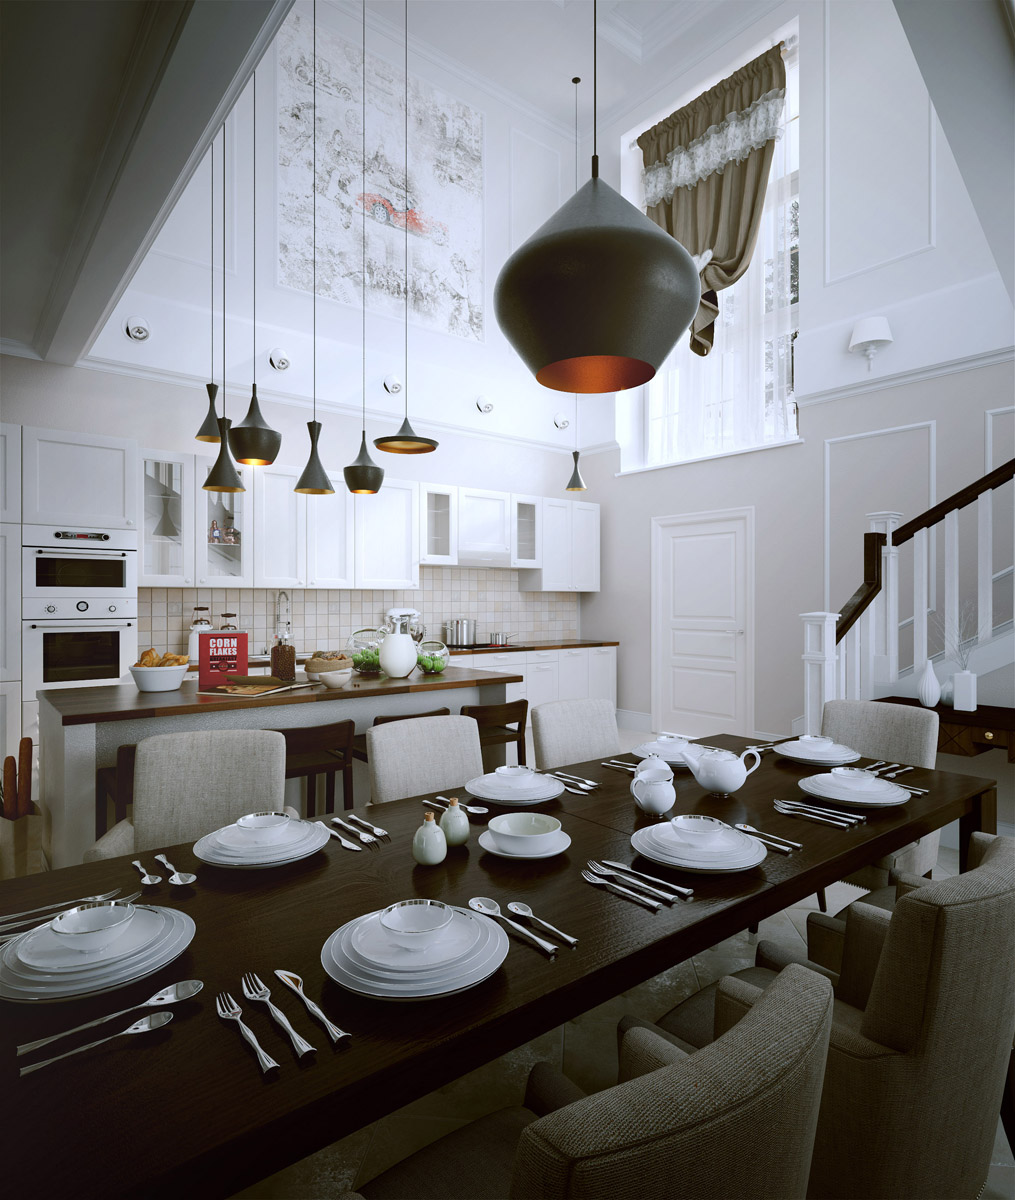 render_kitch_007_final